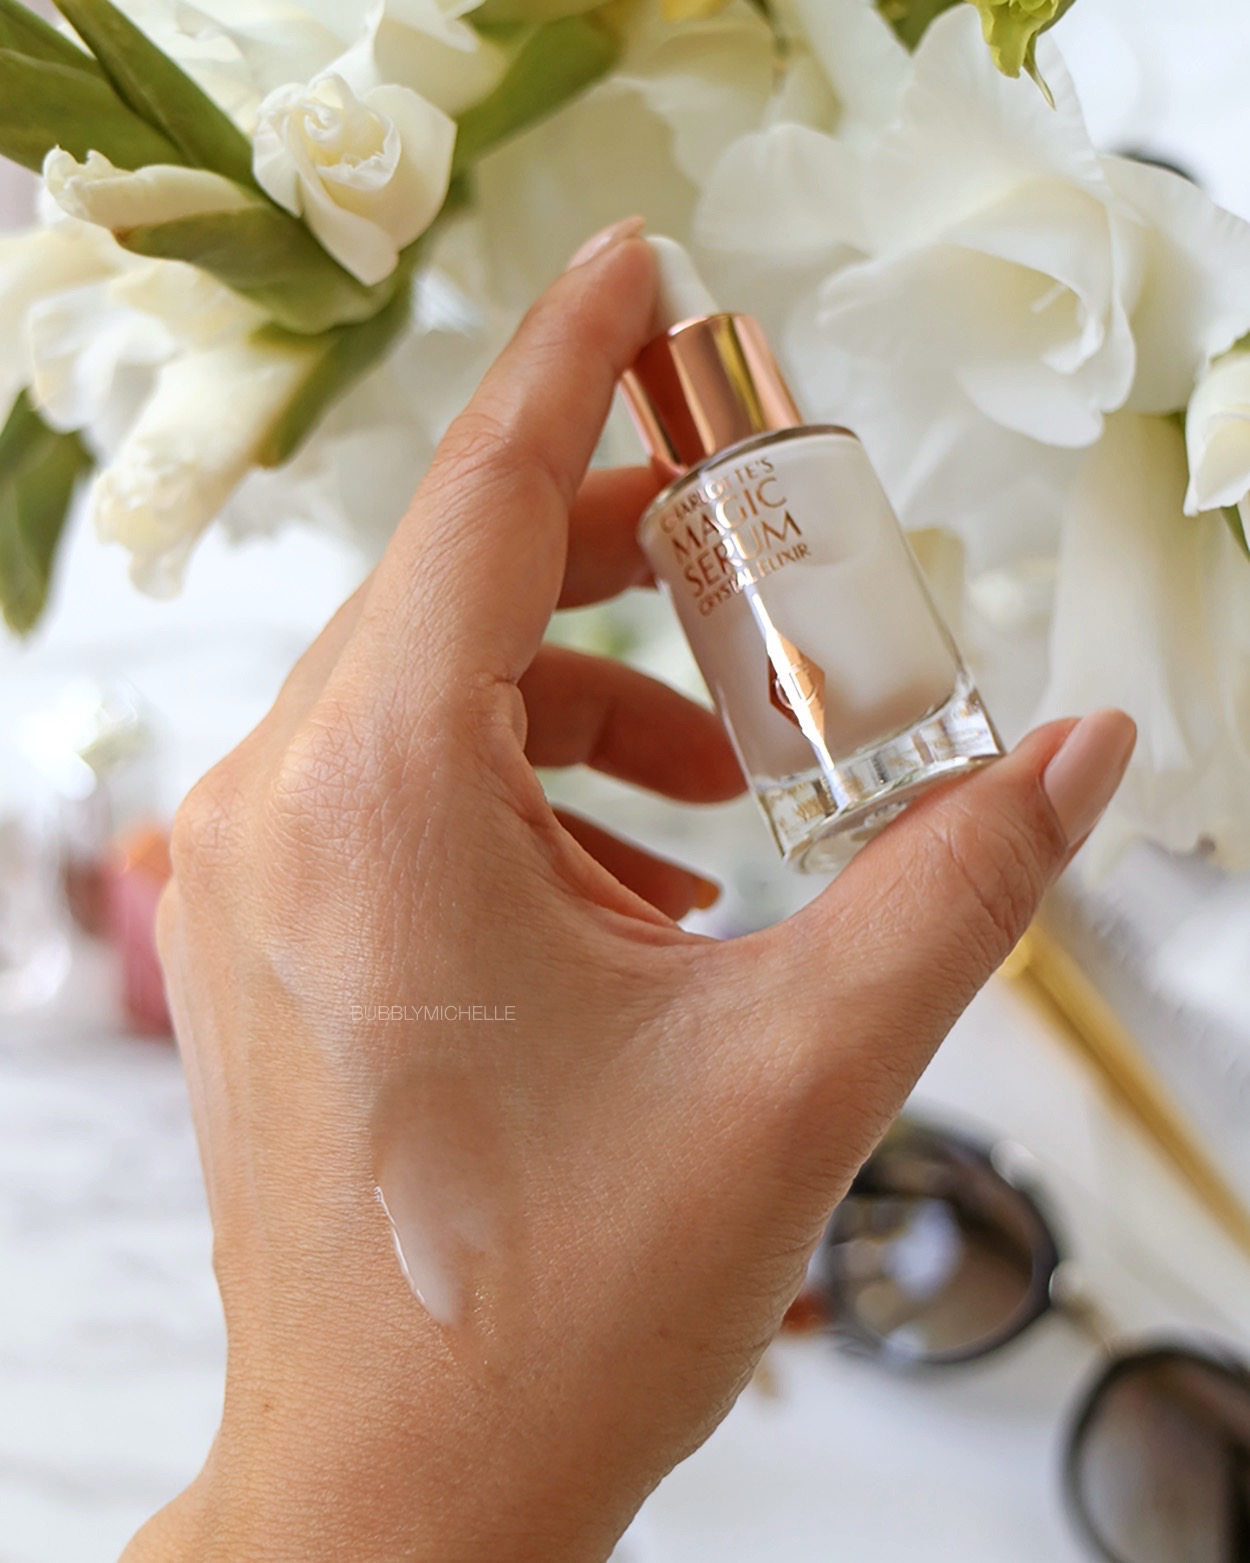 Charlotte Tilbury Magic Serum